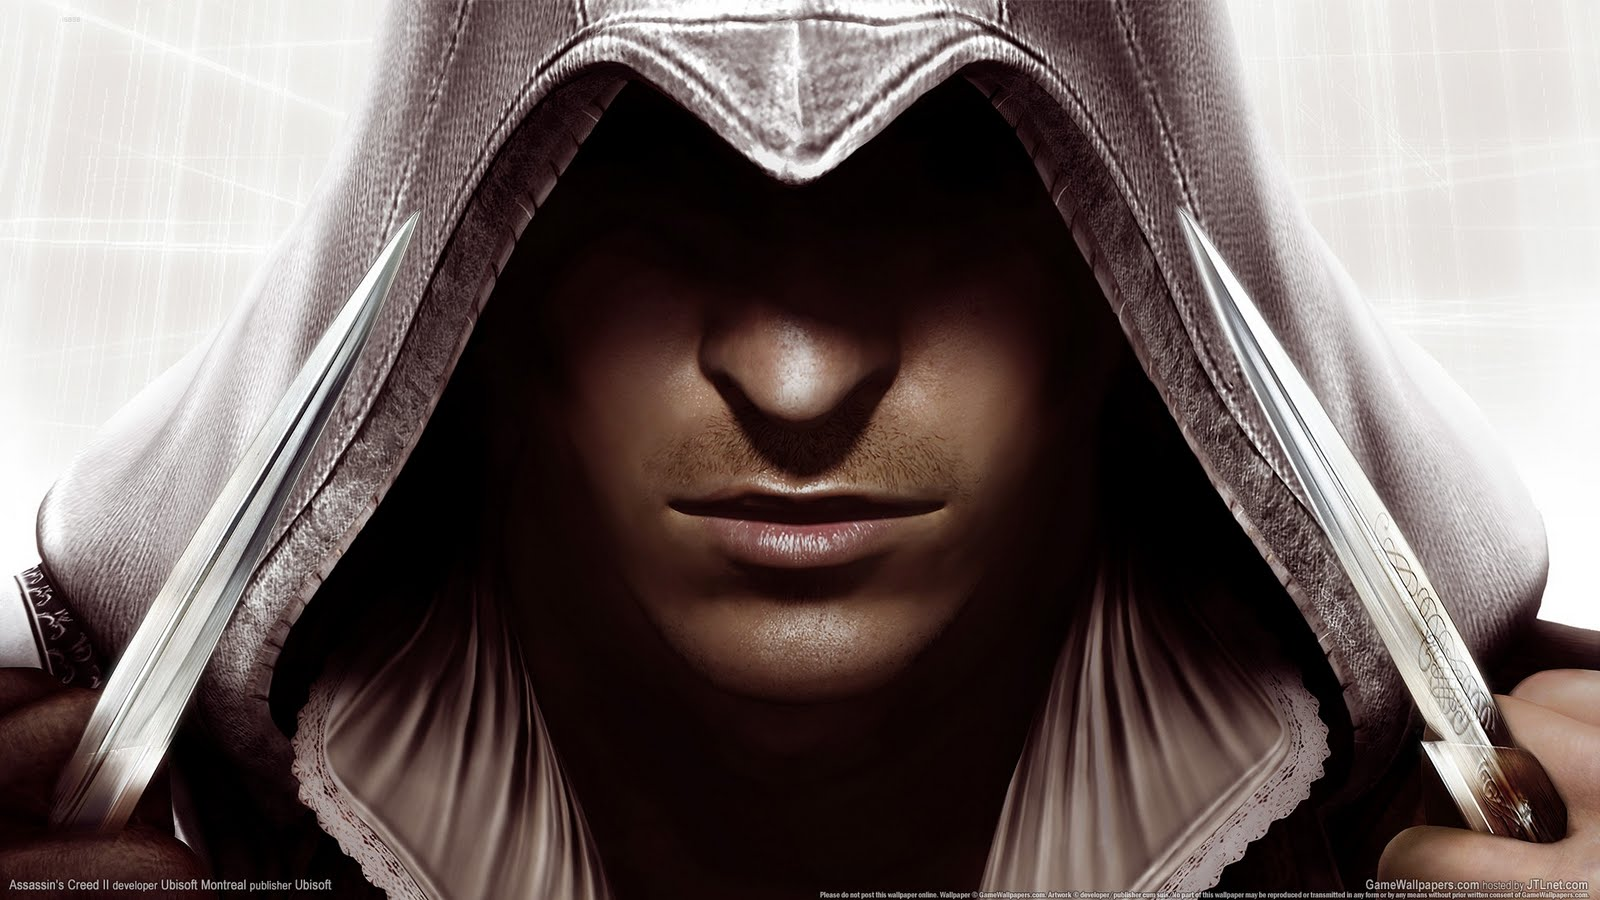 http://1.bp.blogspot.com/-pvVnd5fmx54/Tdo40V2abPI/AAAAAAAAAe4/zK8GJABFdJM/s1600/wallpaper_assassins_creed_ii_04_1920x1080.jpg